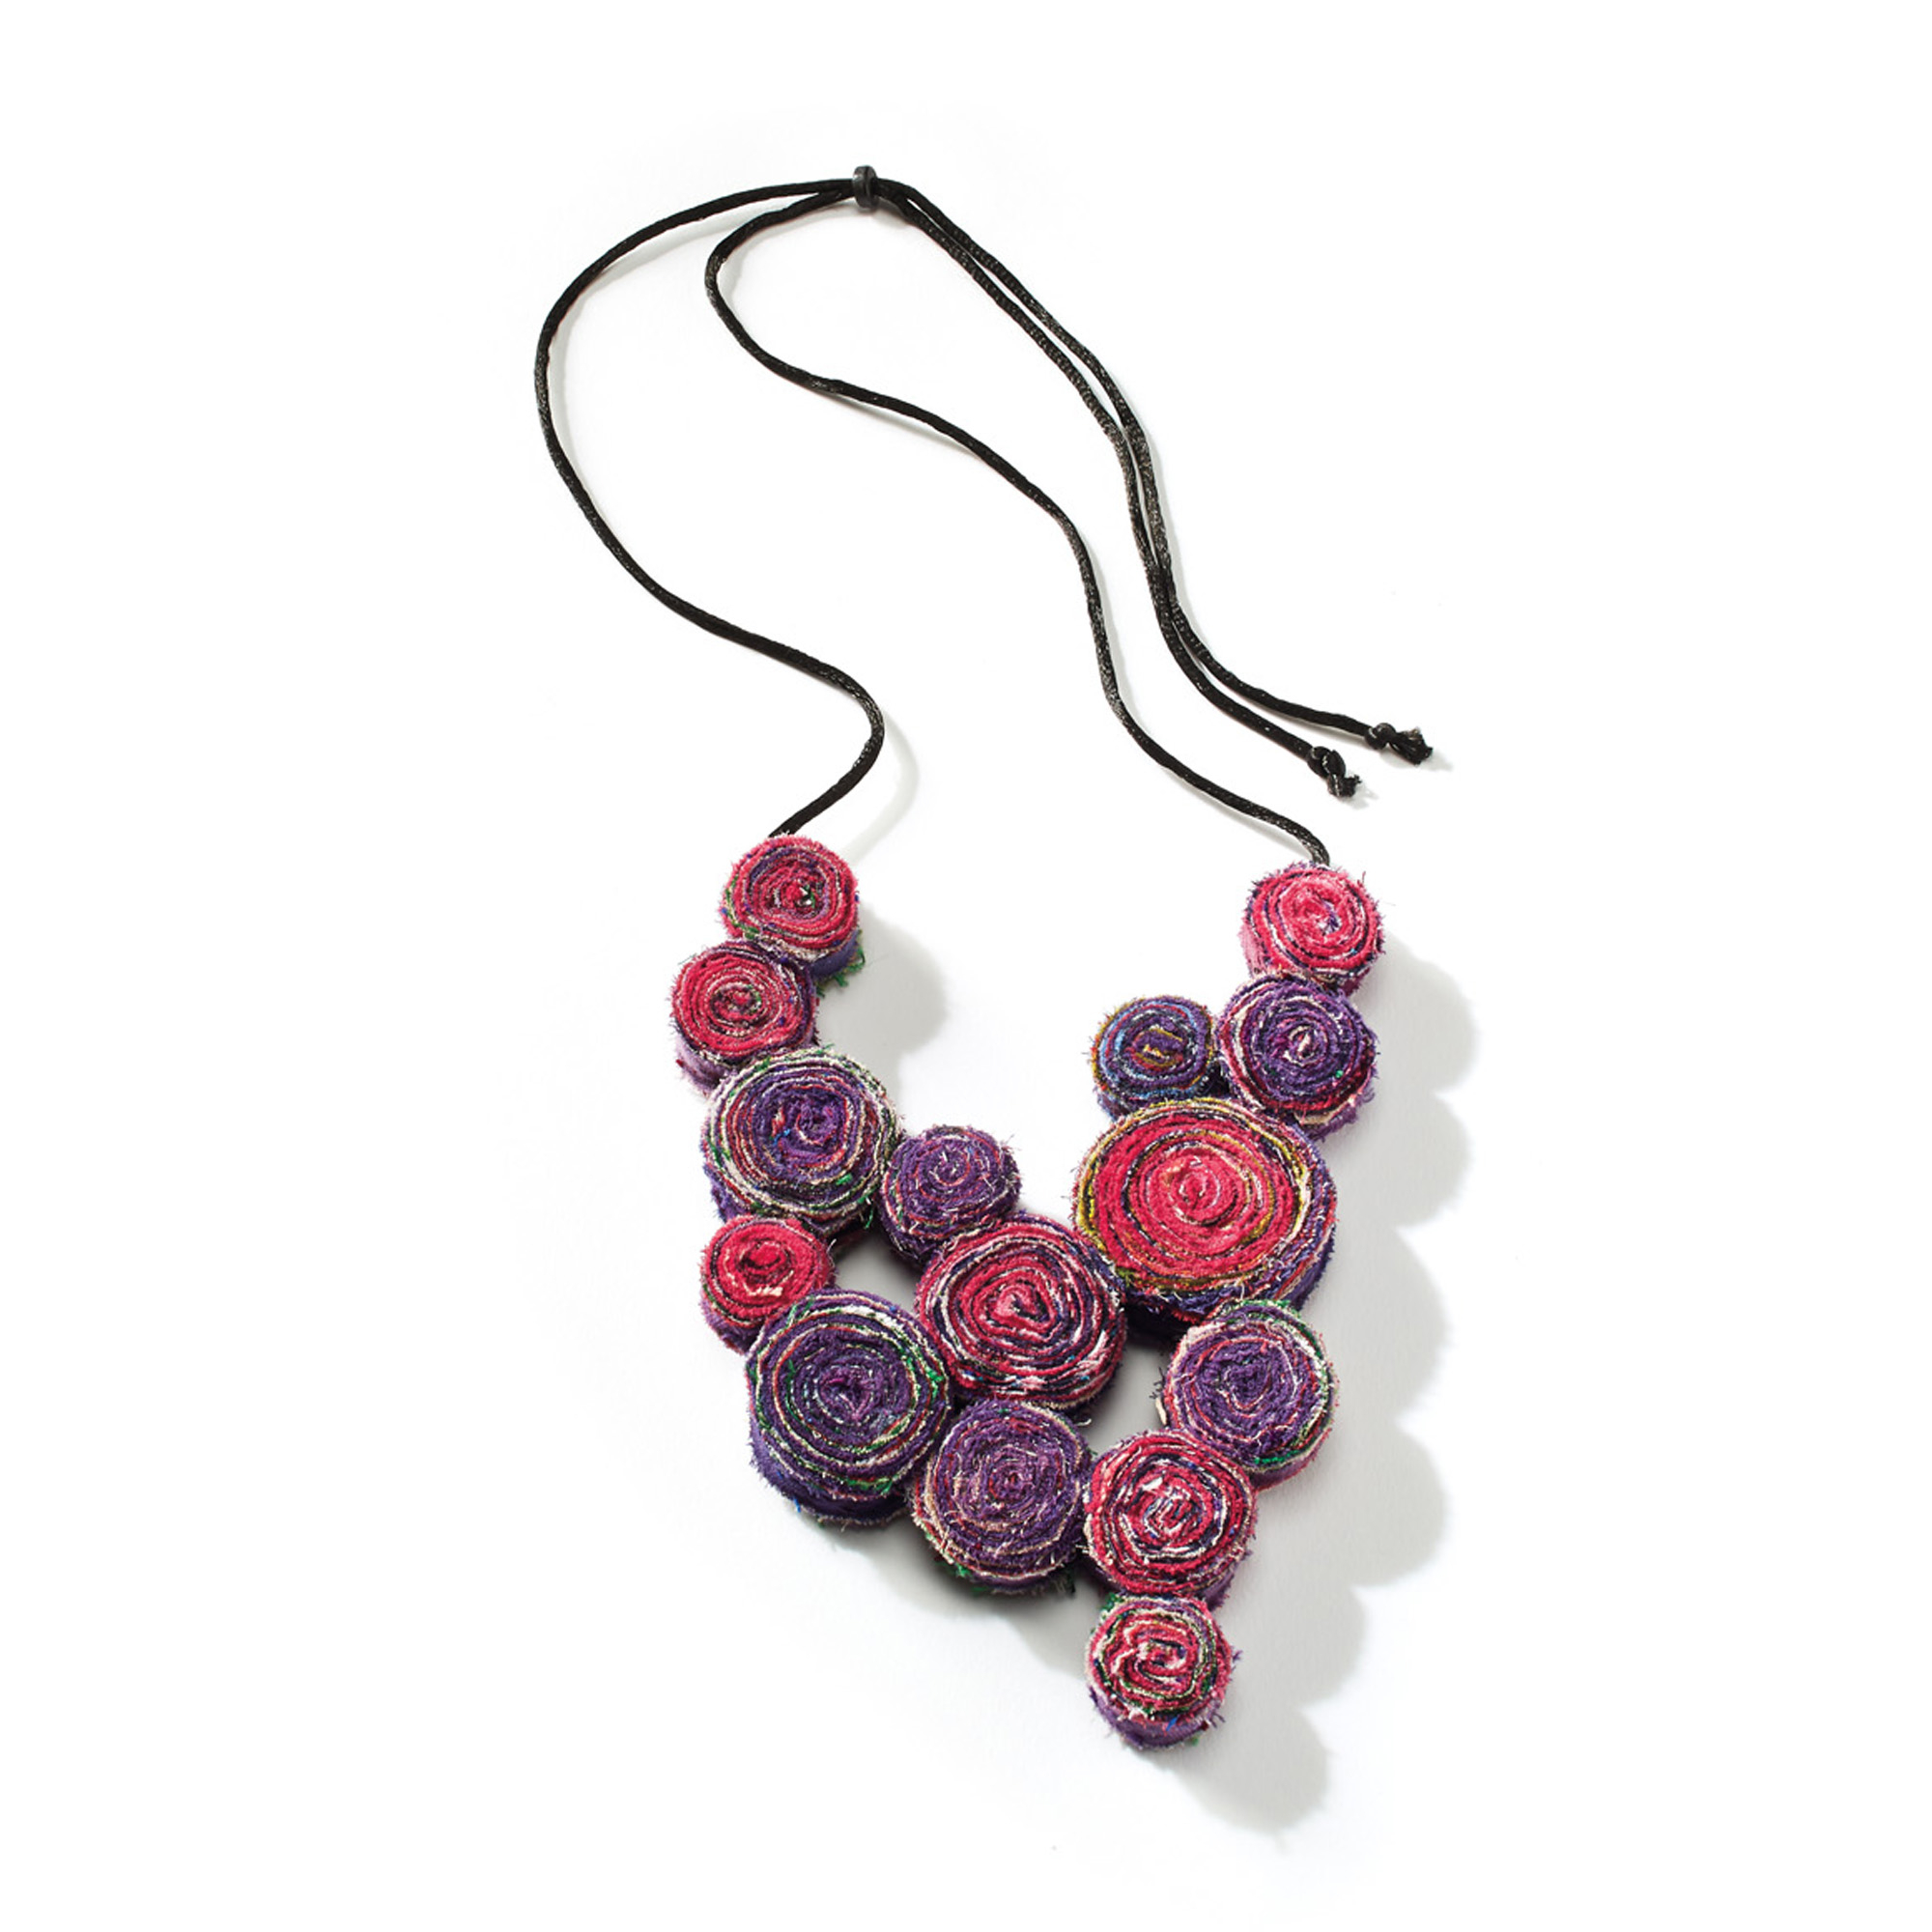 Mieko Mintz Kantha Bib Necklace